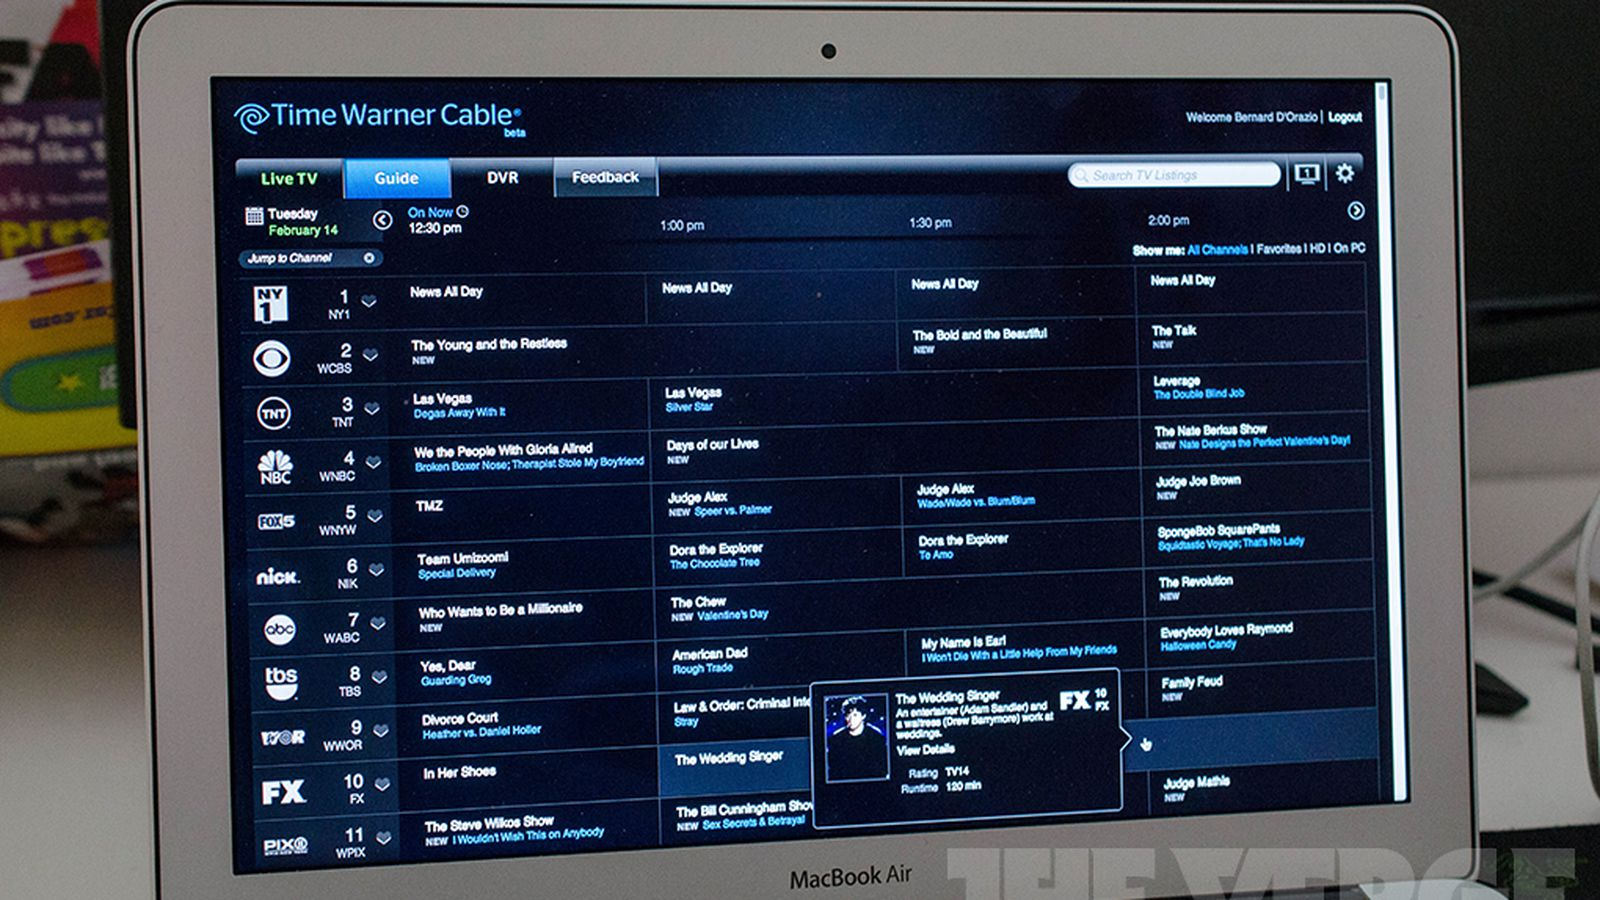 what channel is tsn on time warner cable